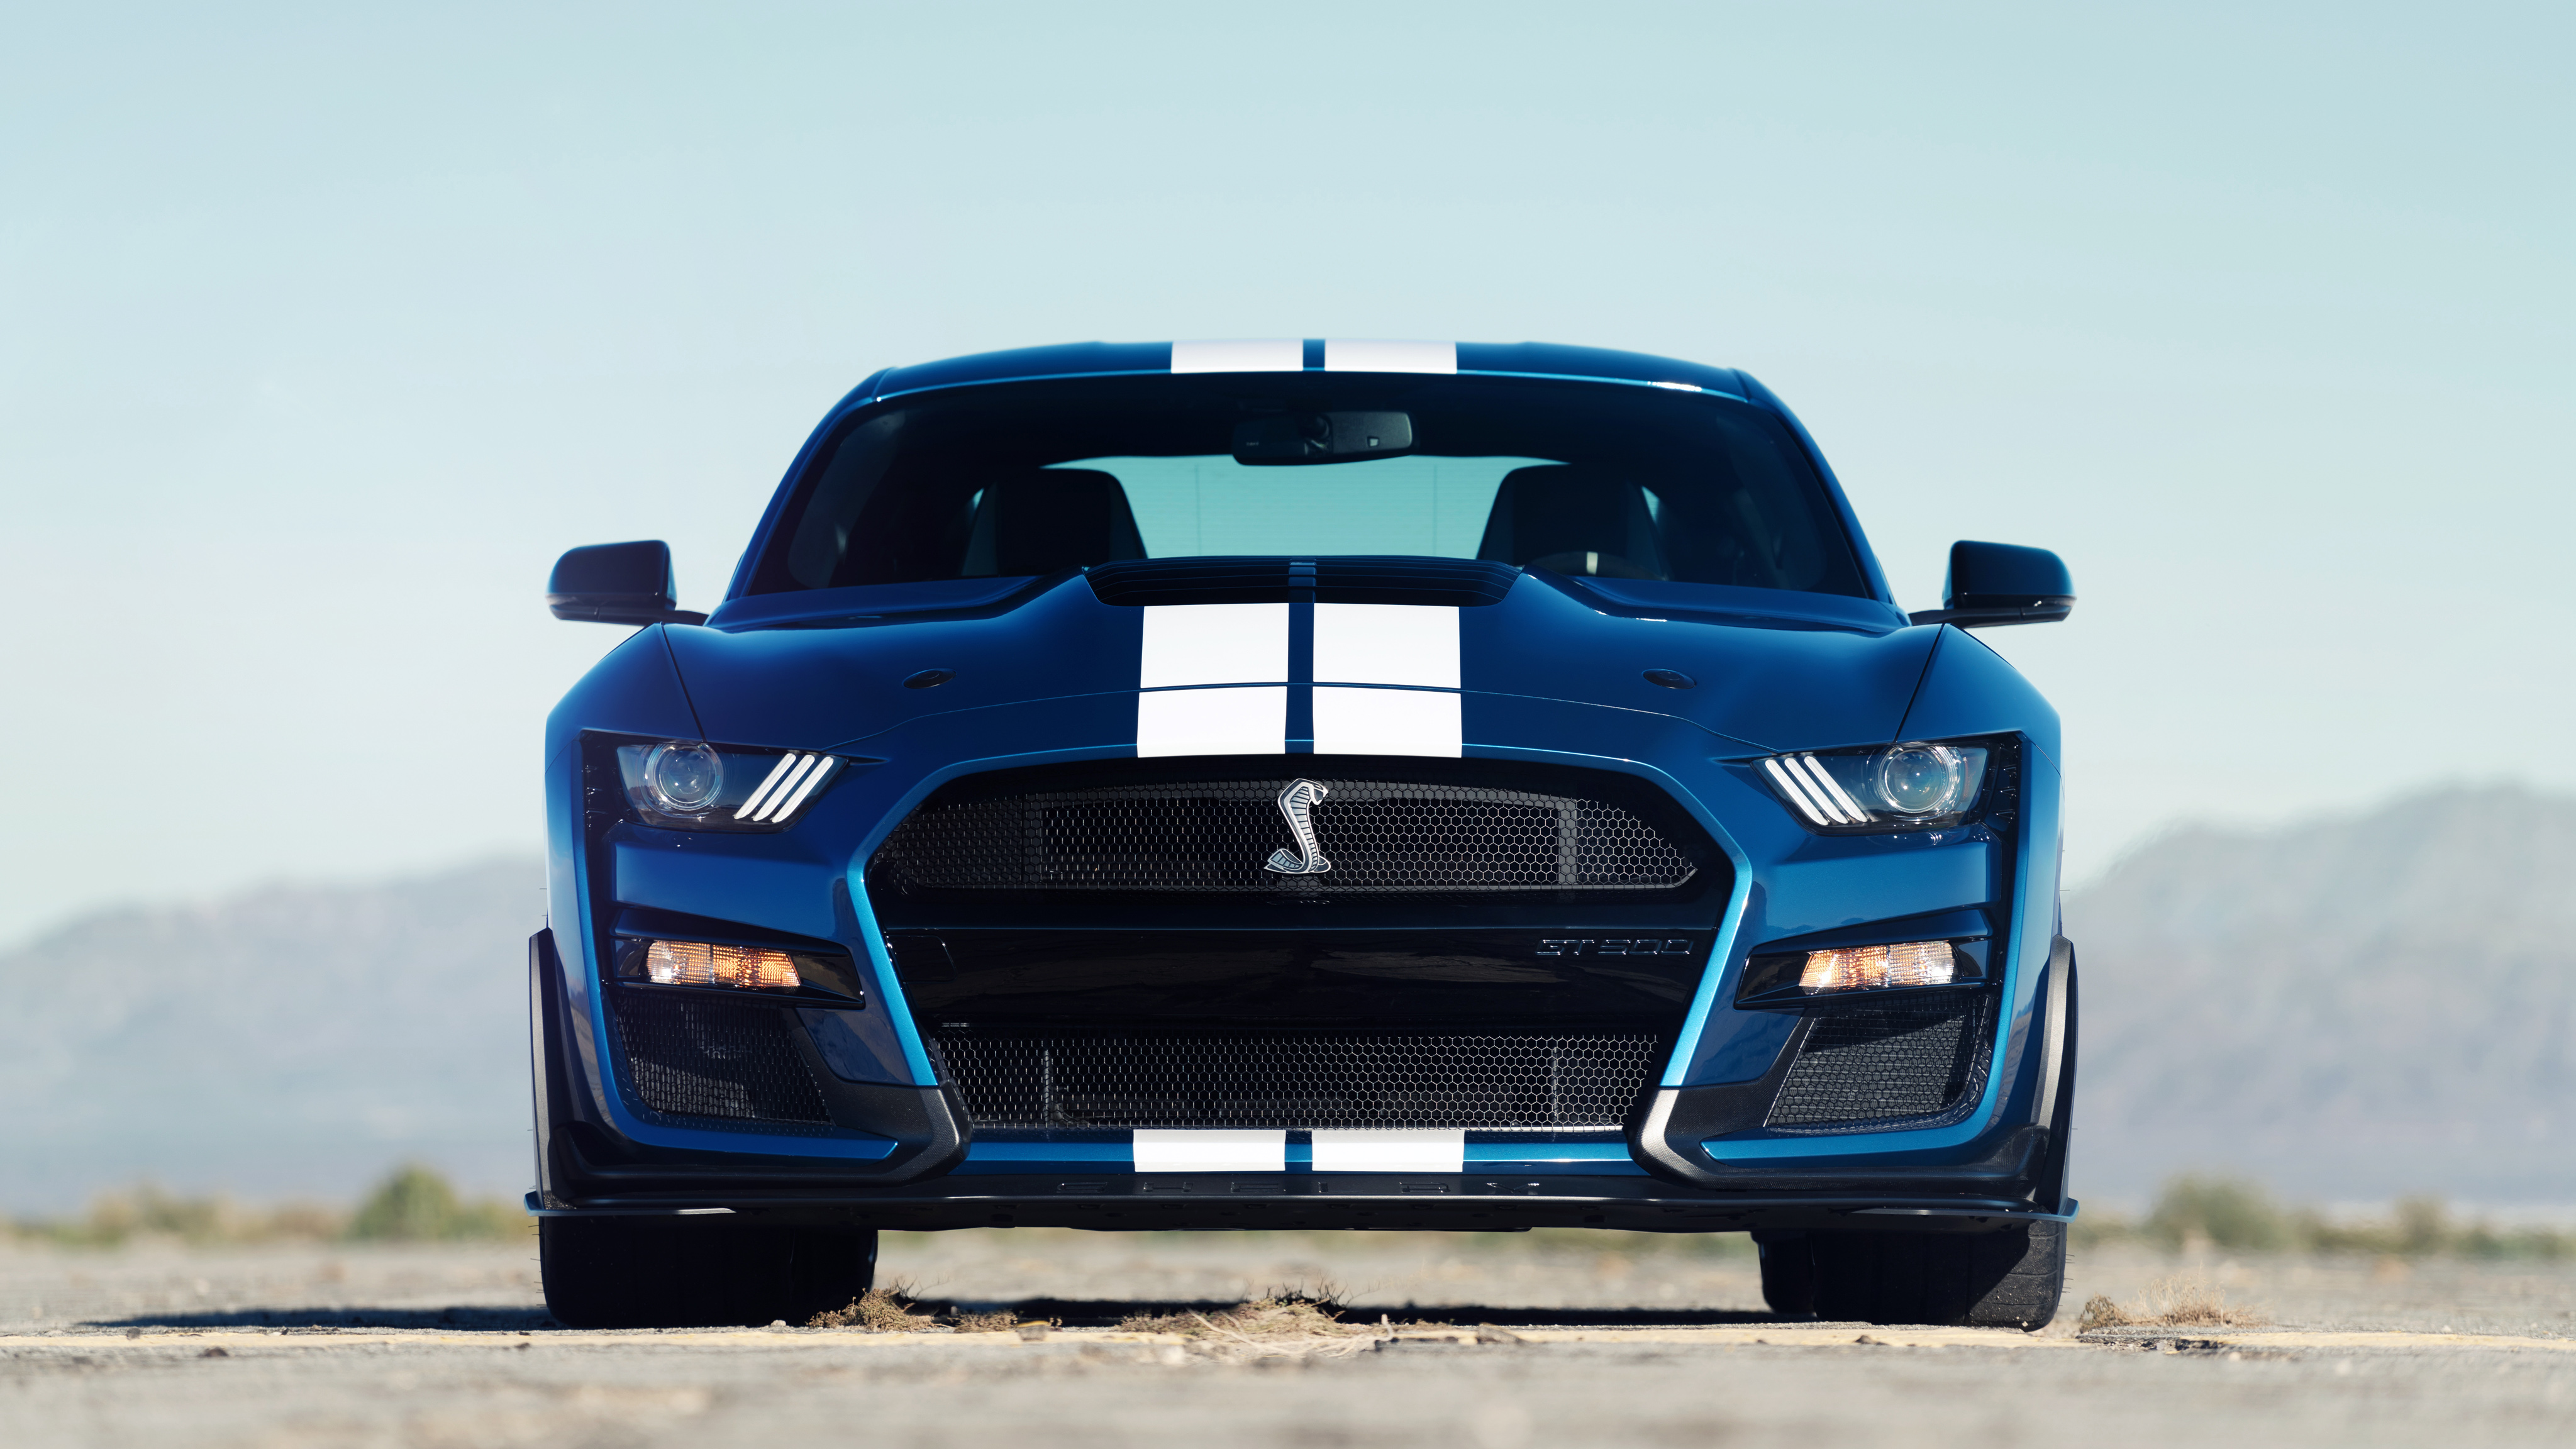 2020 Ford Mustang Shelby GT500 4K Wallpaper HD Car Wallpapers 4096x2304